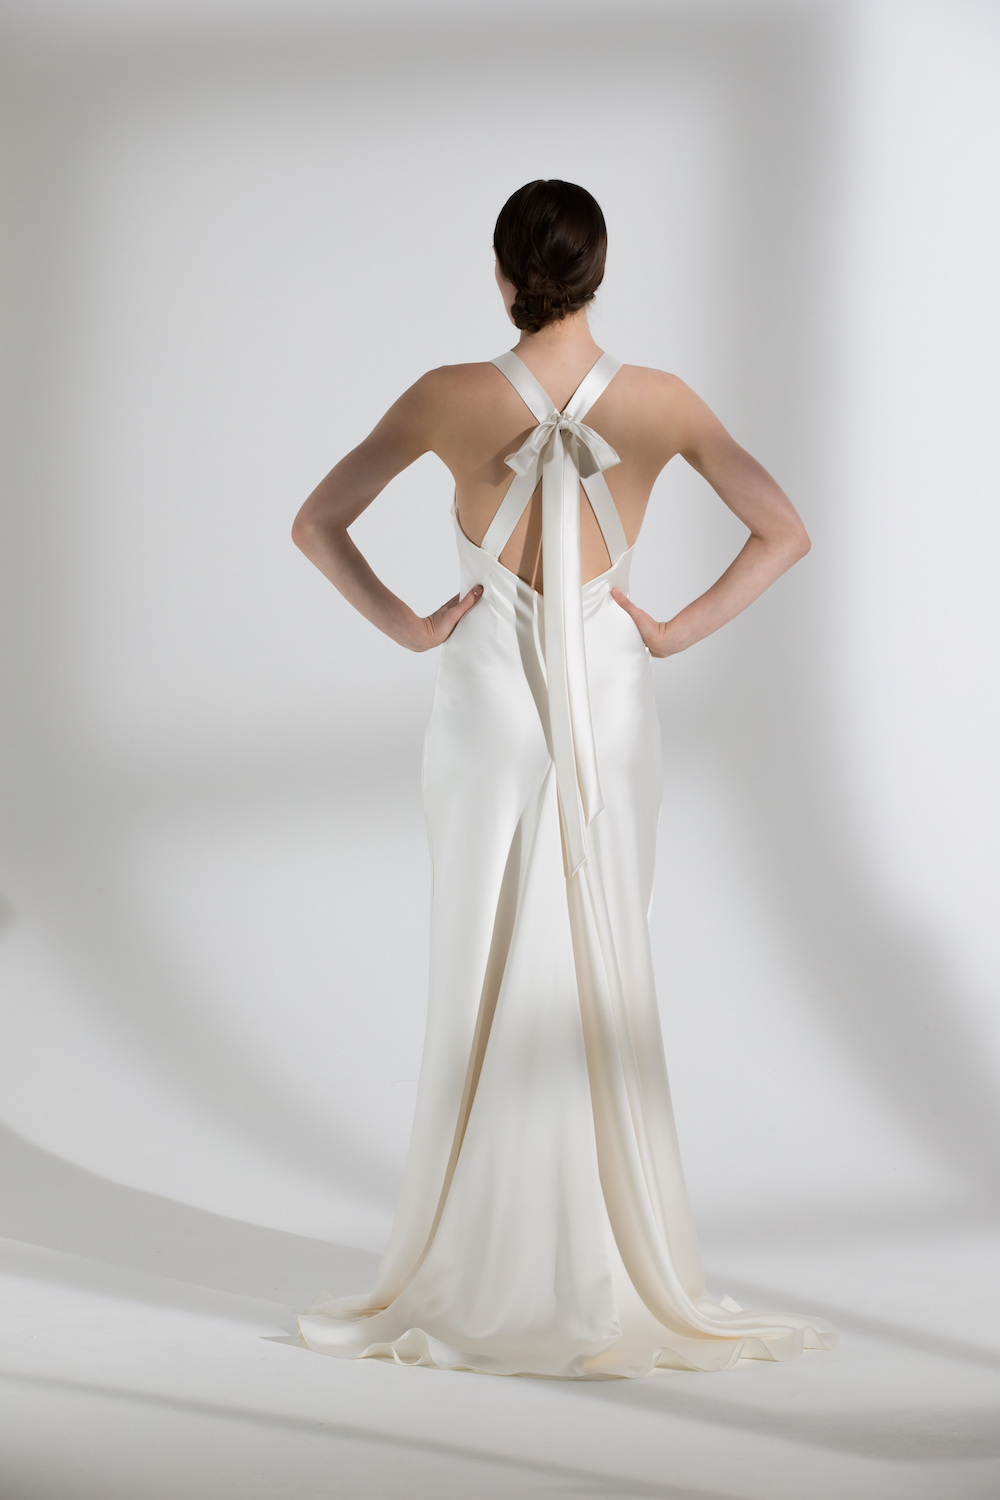 Juniper dress by Halfpenny London | Stylish, fitted wedding gown